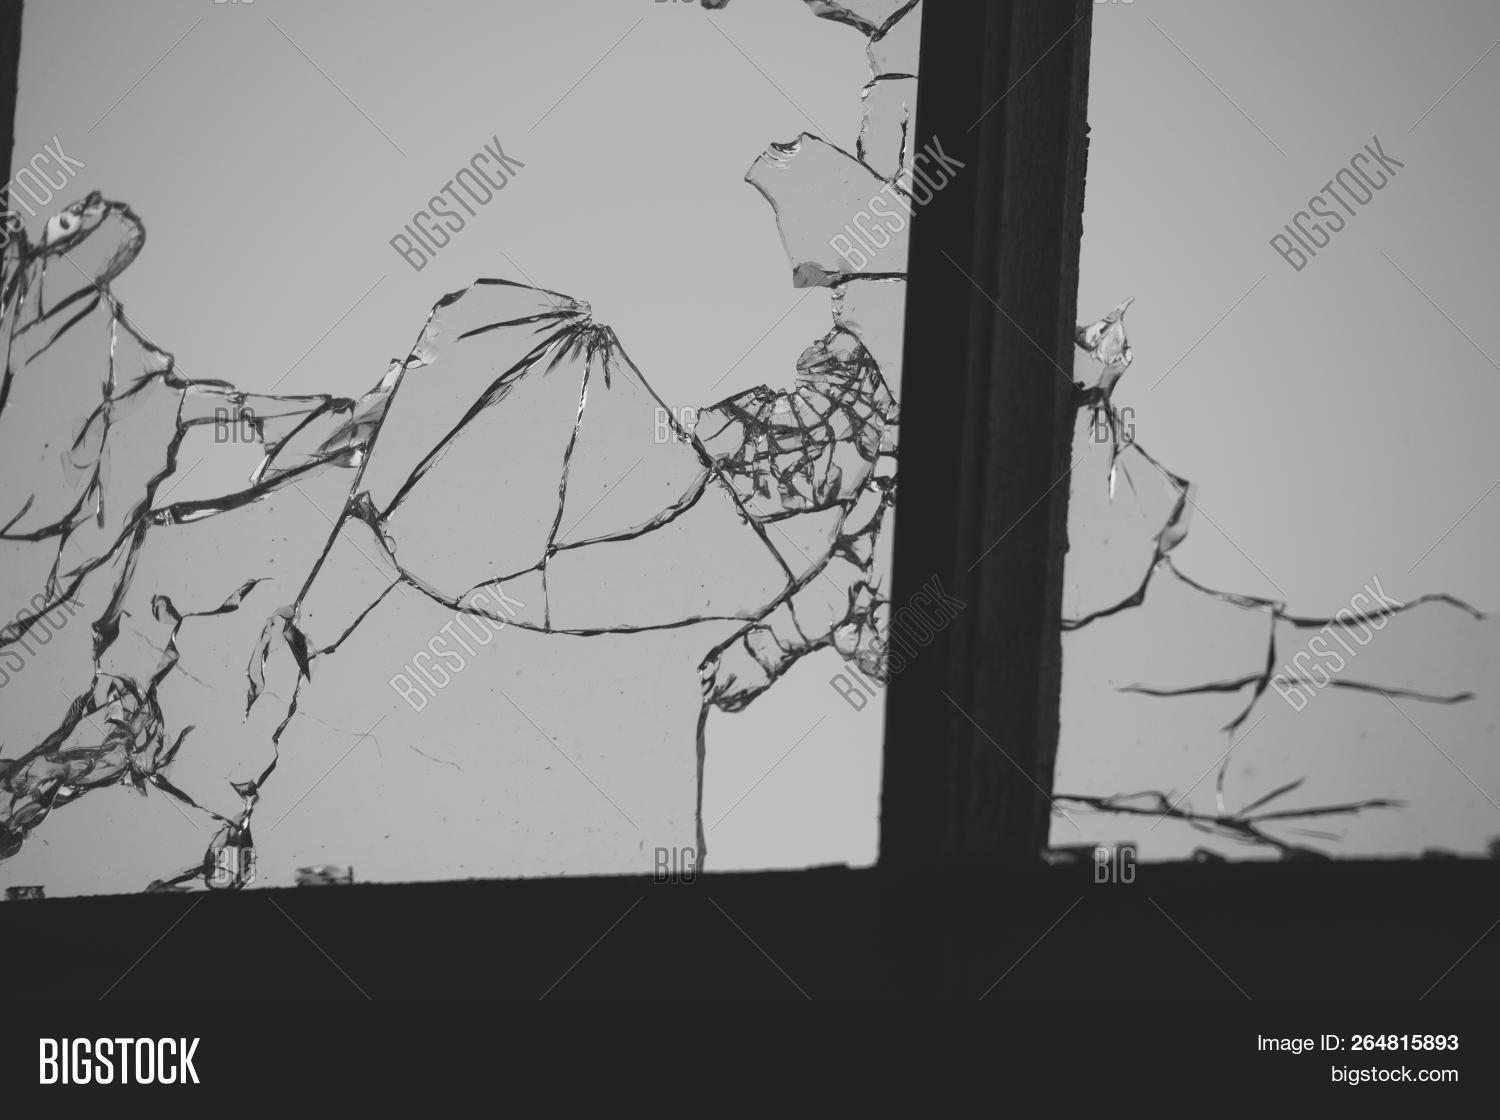 Cracked Broken Window Image & Photo (Free Trial) | Bigstock